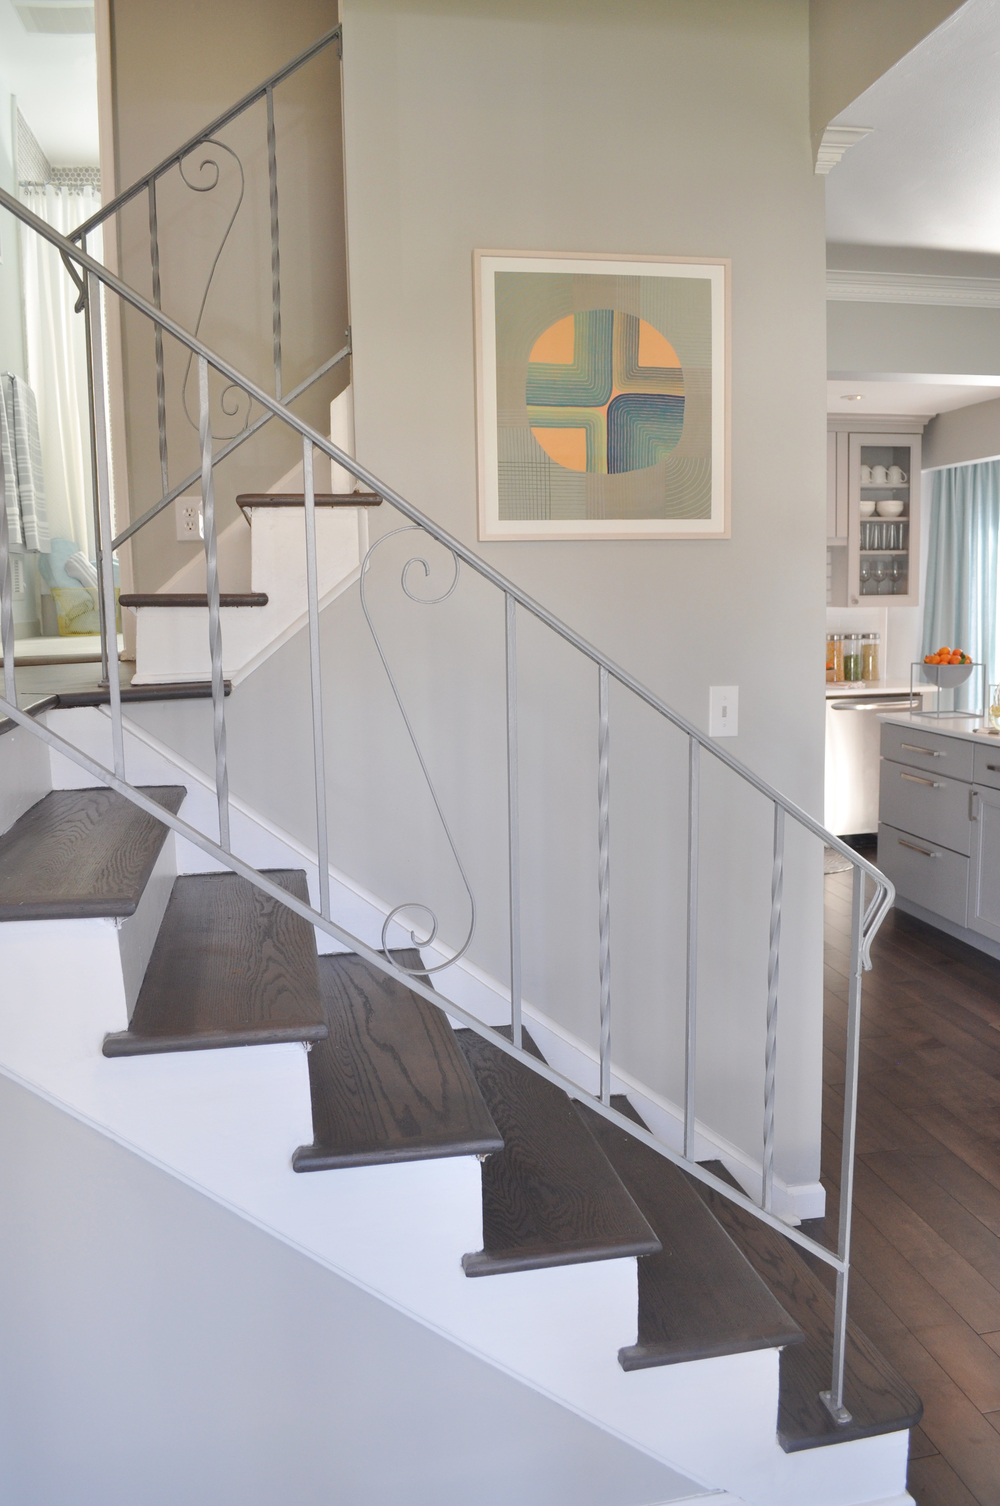 Kim Annick Mitchell Production Designer_HGTV_Buying and Seling with The Property Brothers_Season 3_Episode 316_Gray Entry Staircase_Modern Art.jpg